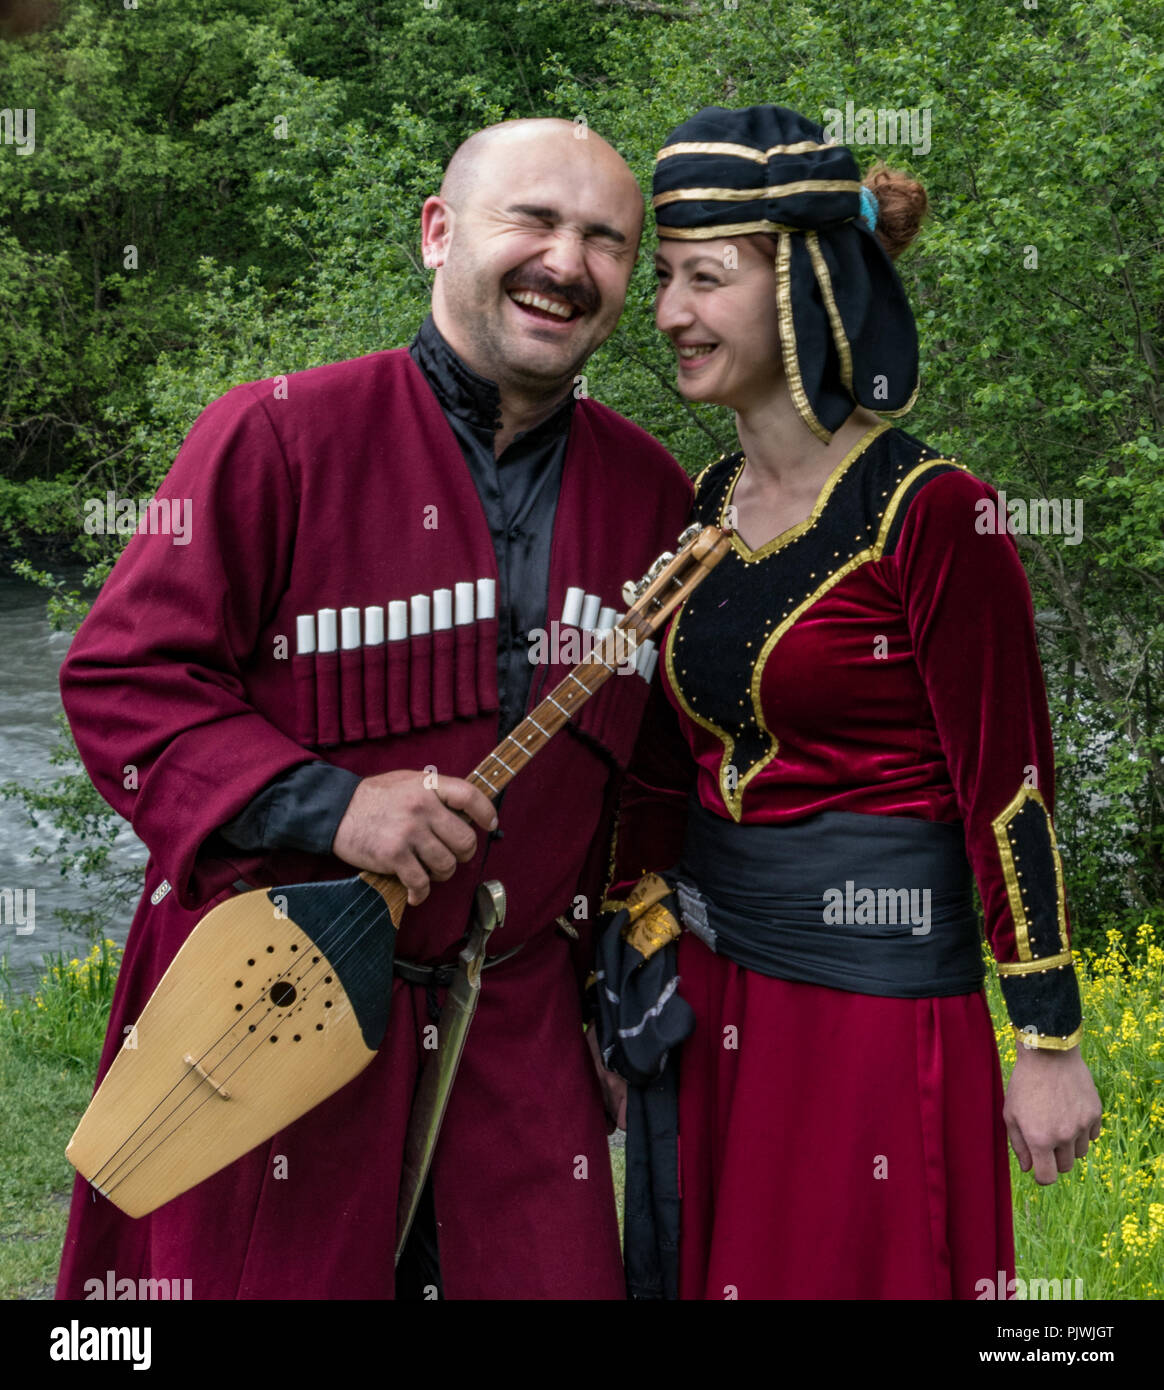 Mestia, Georgia / June 11, 2016 - Man and woman in traditional medieval garb share a laugh while holding a musical stringed instrument - Stock Image